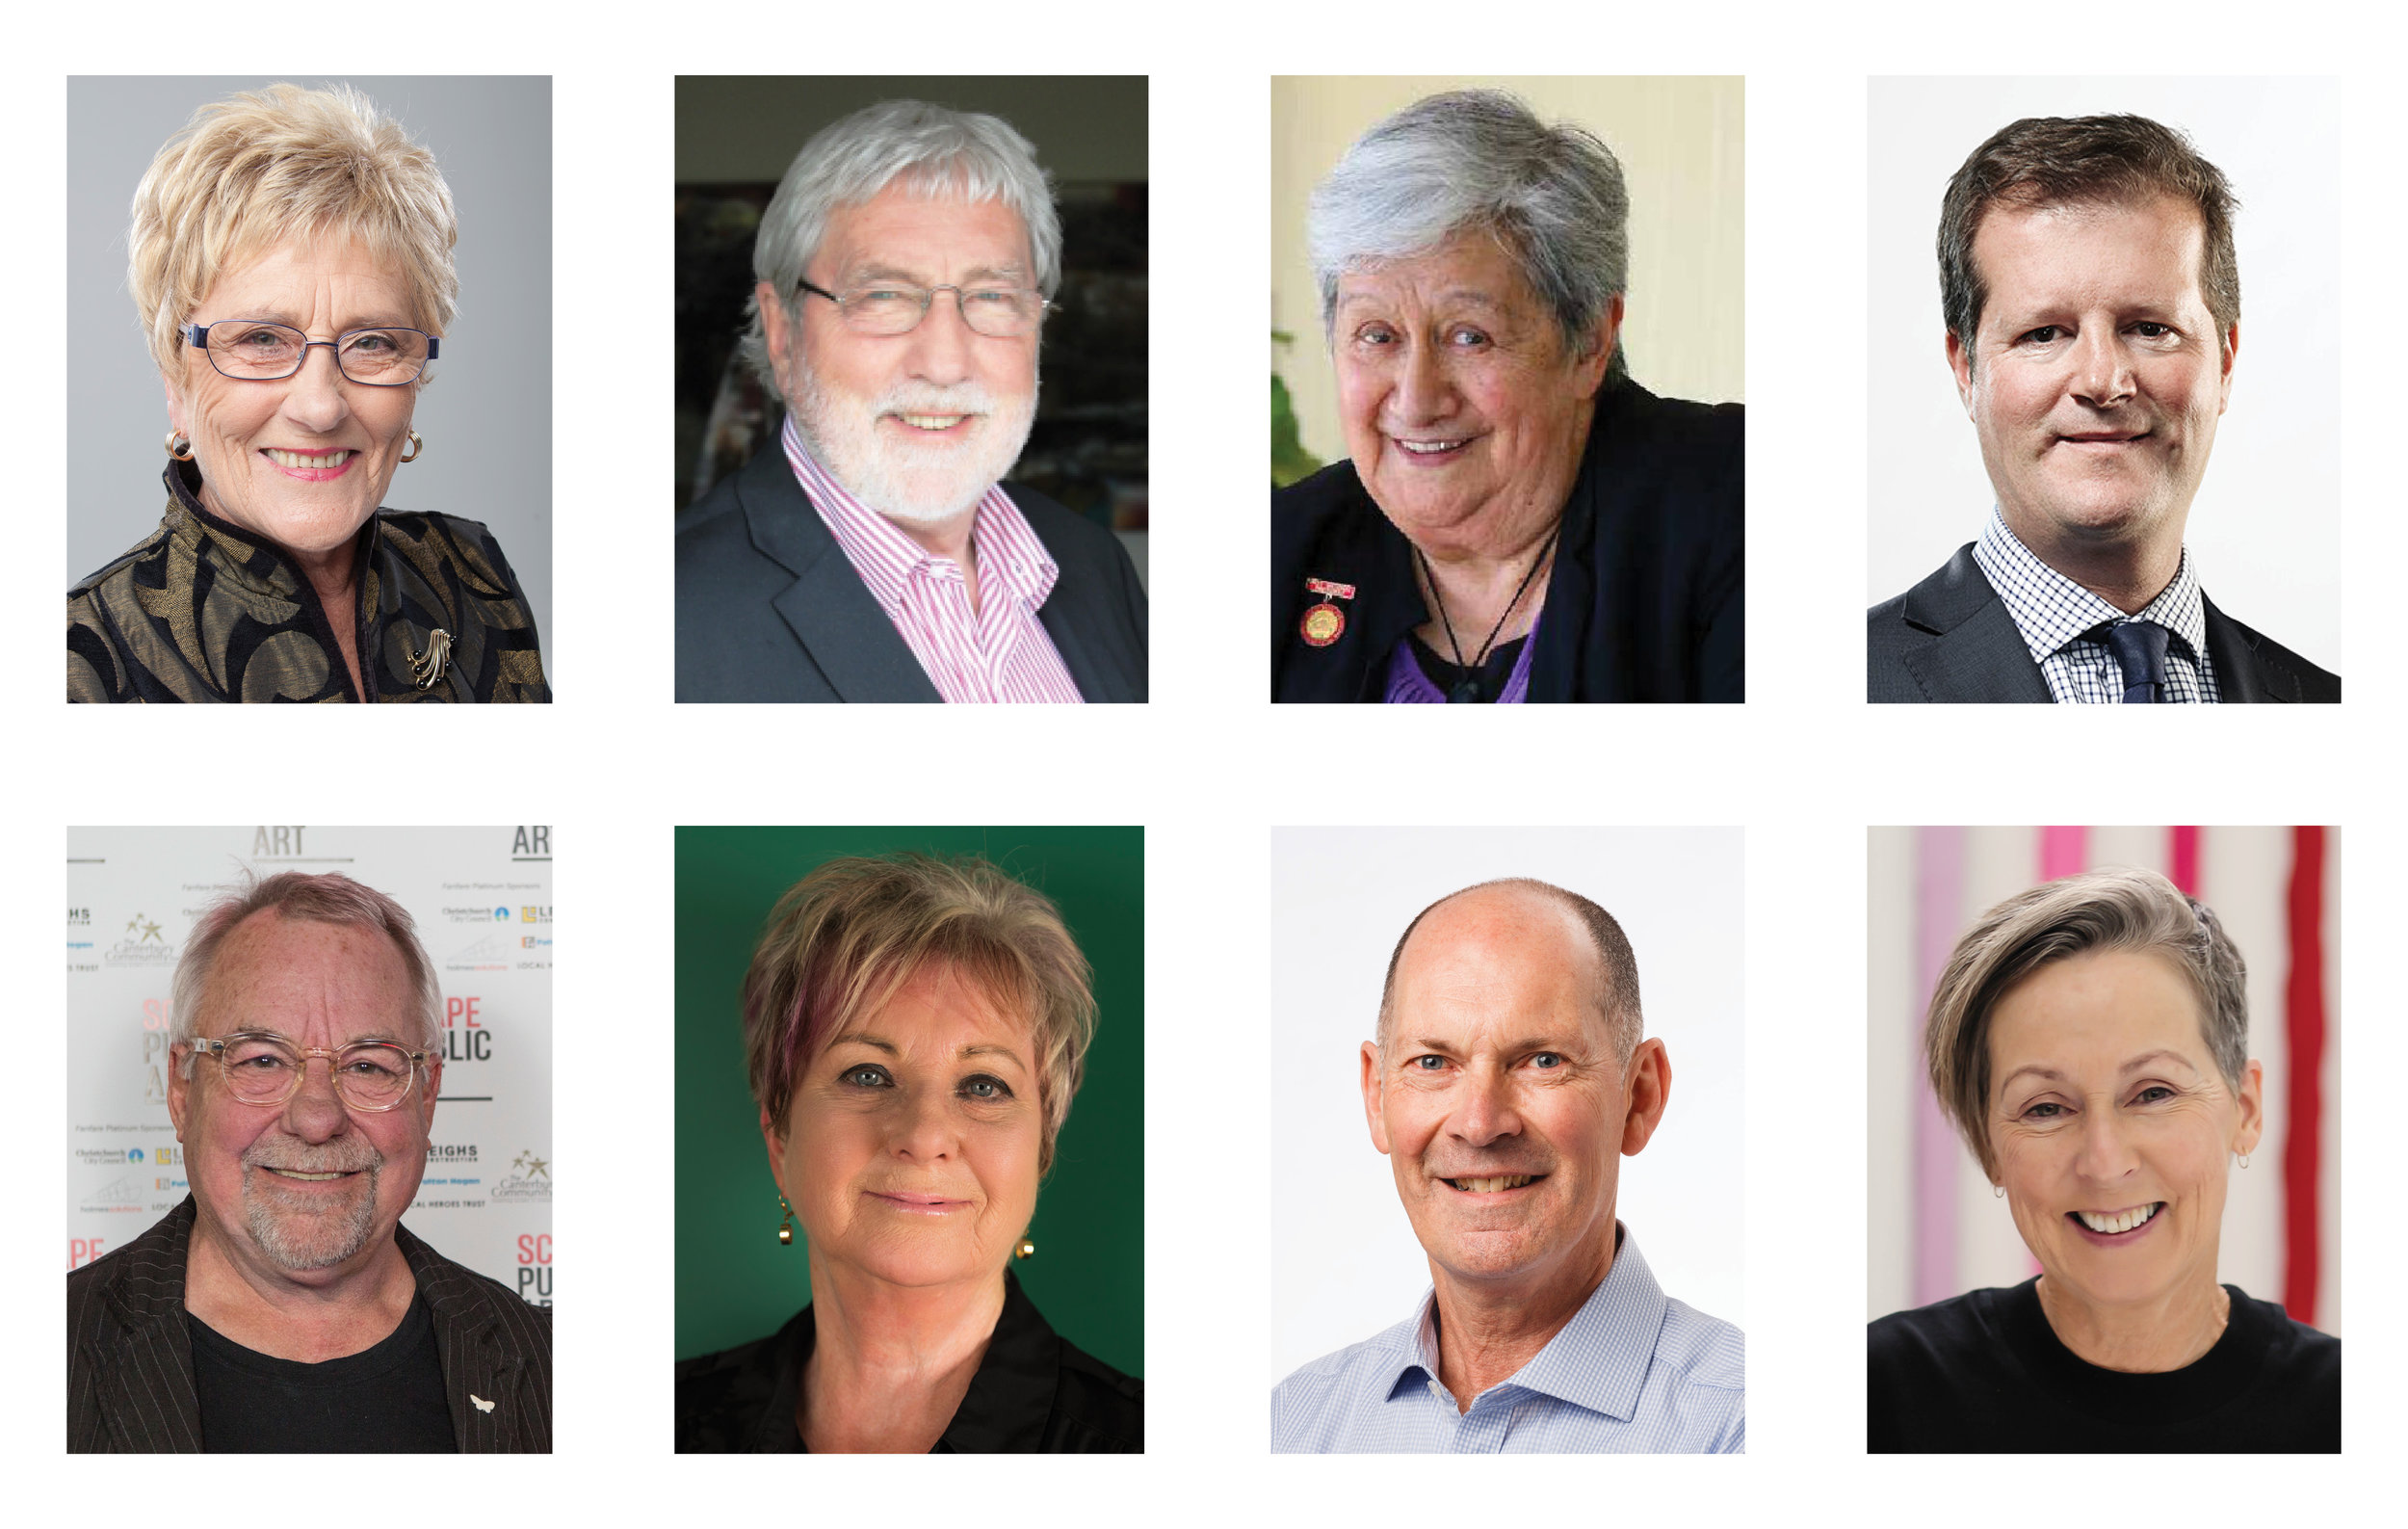 Entries were judged by well-known advocates for public arts, from top left:  Dame Adrienne Stewart, Bob Blyth, Aroha Reriti-Crofts, David Goodman, Neil Dawson, Anna Crighton, Anthony Wright and Helen Calder.